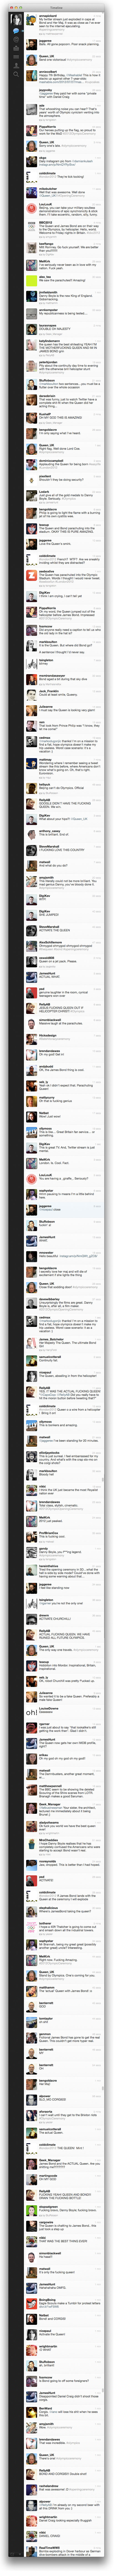 My view of Twitter during the Bond / The Queen sequence of the London 2012 Olympics opening ceremony (timeline starts at the bottom)